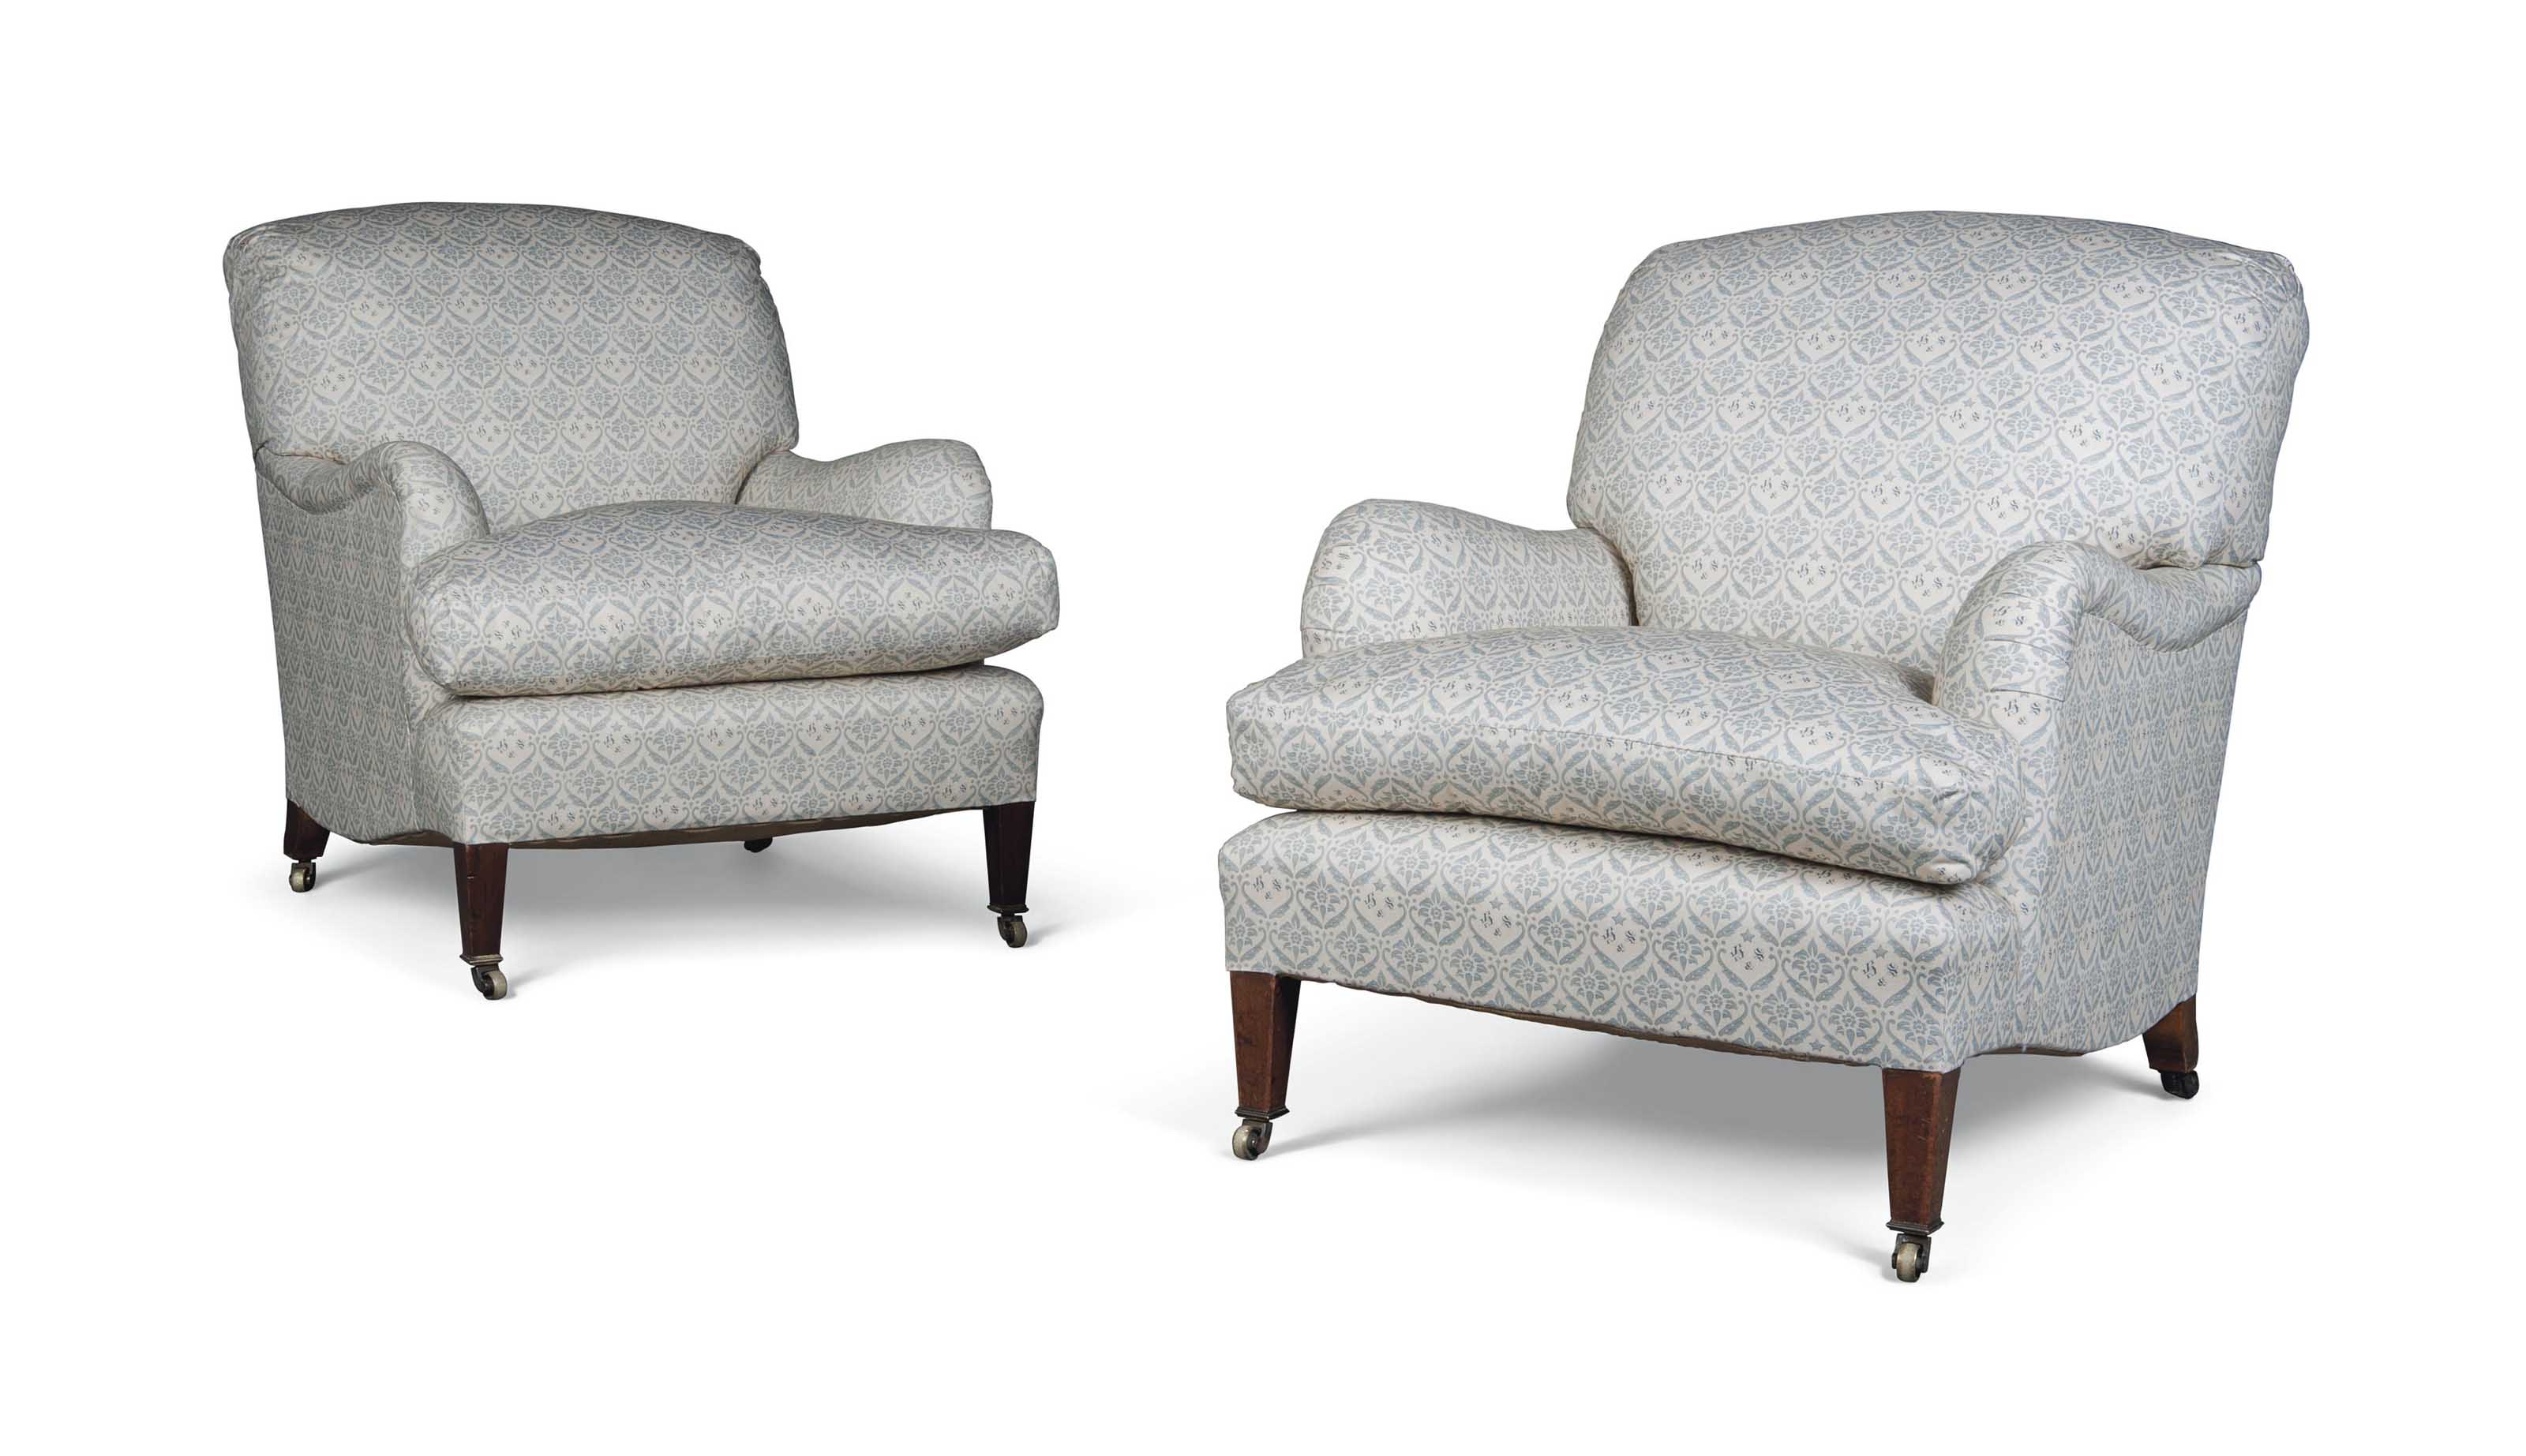 A PAIR OF LATE VICTORIAN OR EDWARDIAN EASY ARMCHAIRS